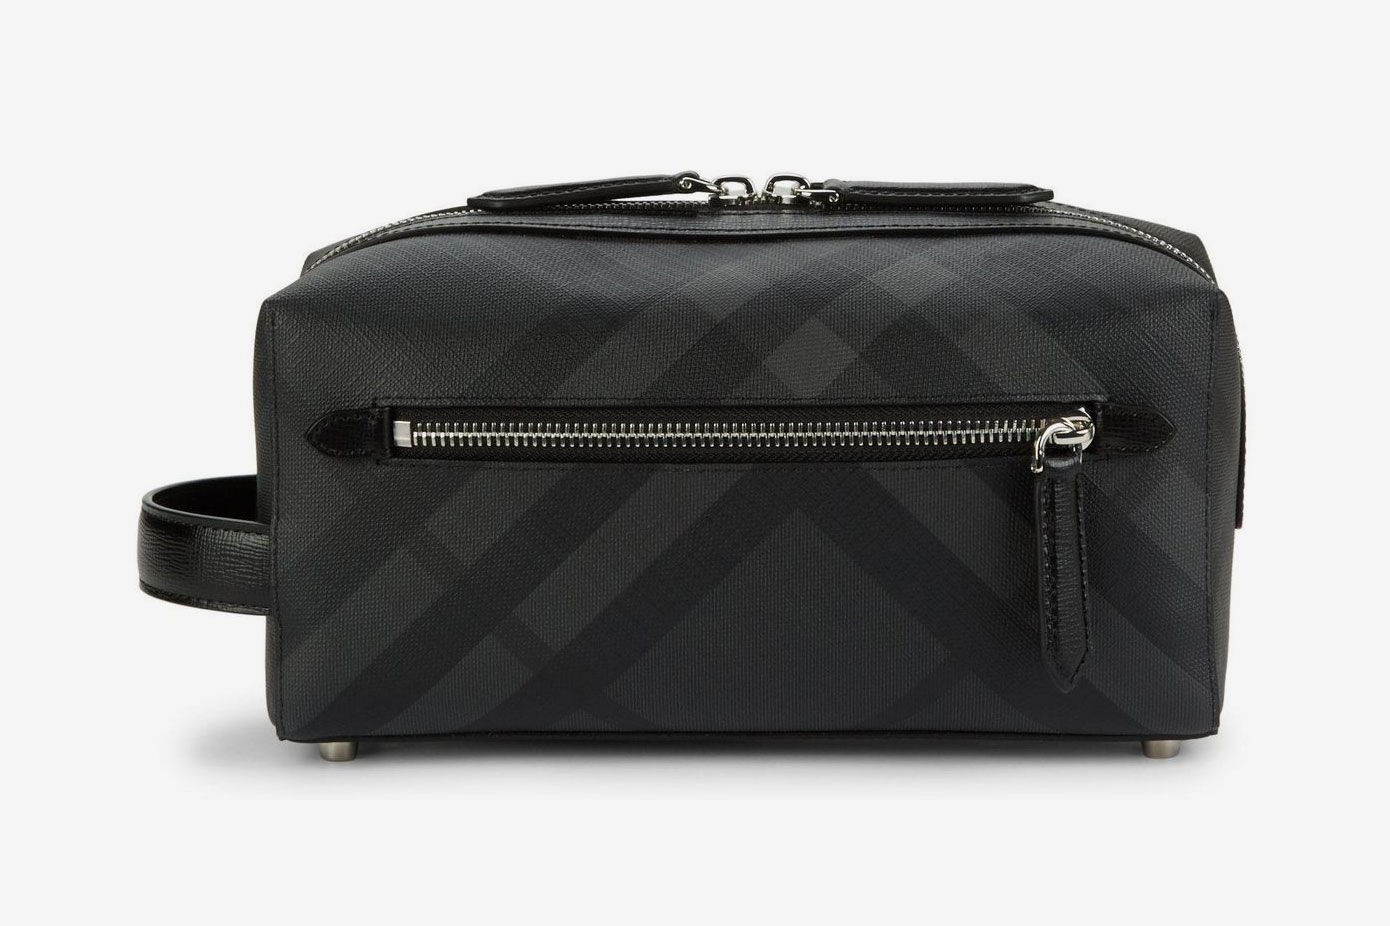 faa34dd7311b Burberry Check Dopp Kit at Saks Fifth Avenue